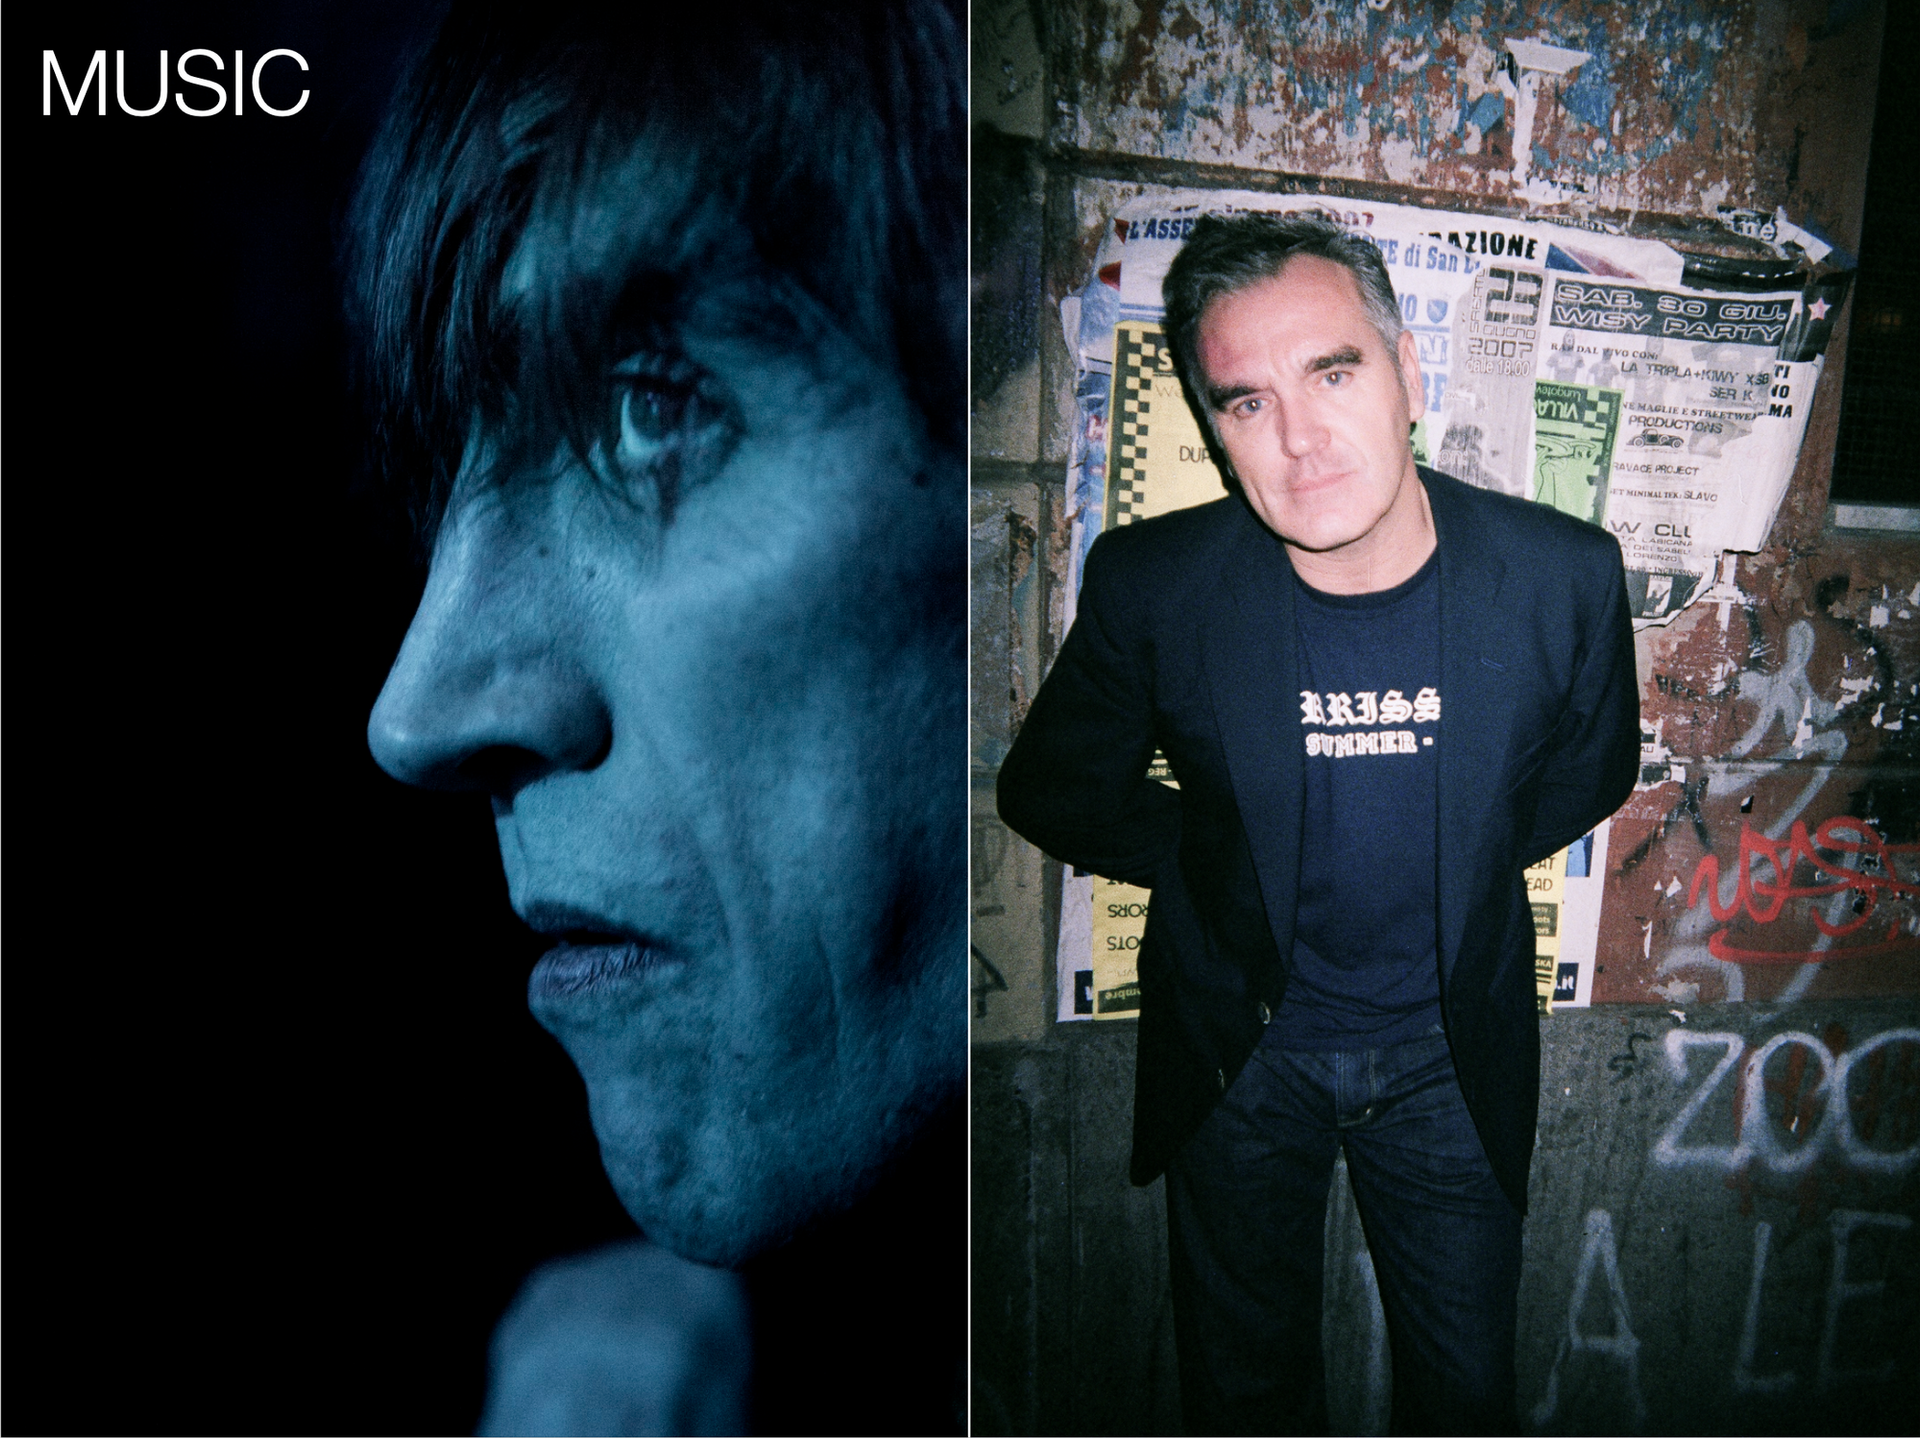 IGGY POP / MORRISEY